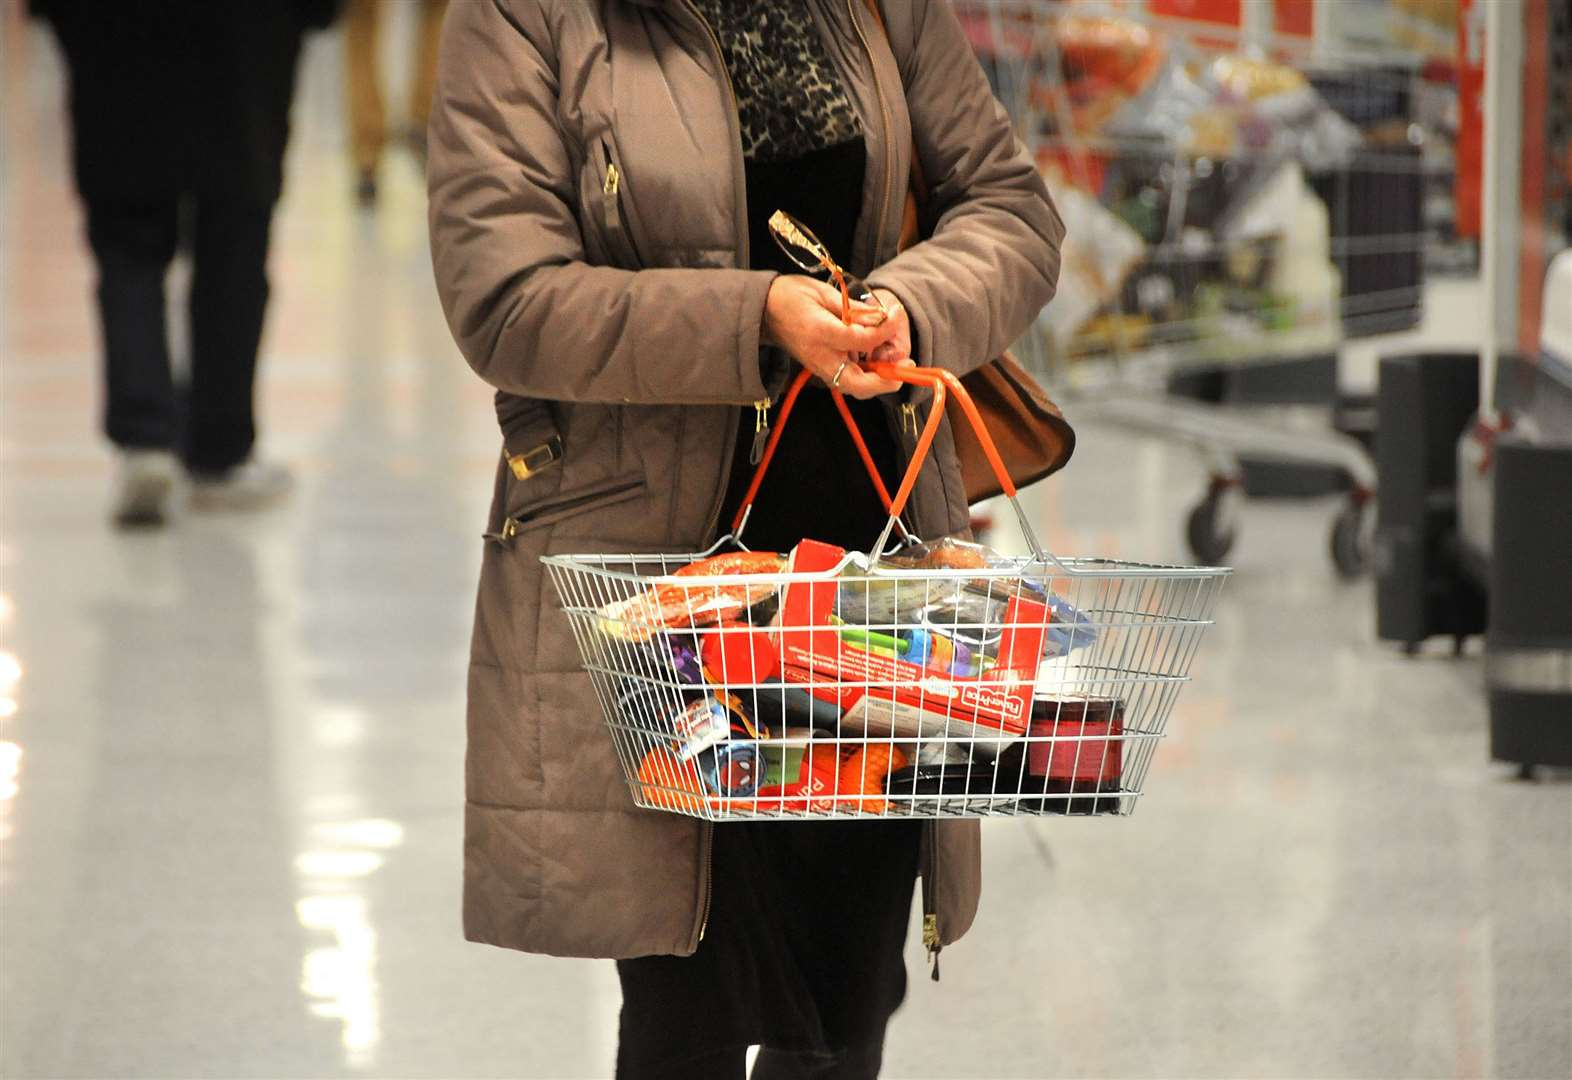 Sainsbury's will remain closed on Boxing Day to help give staff a proper festive break